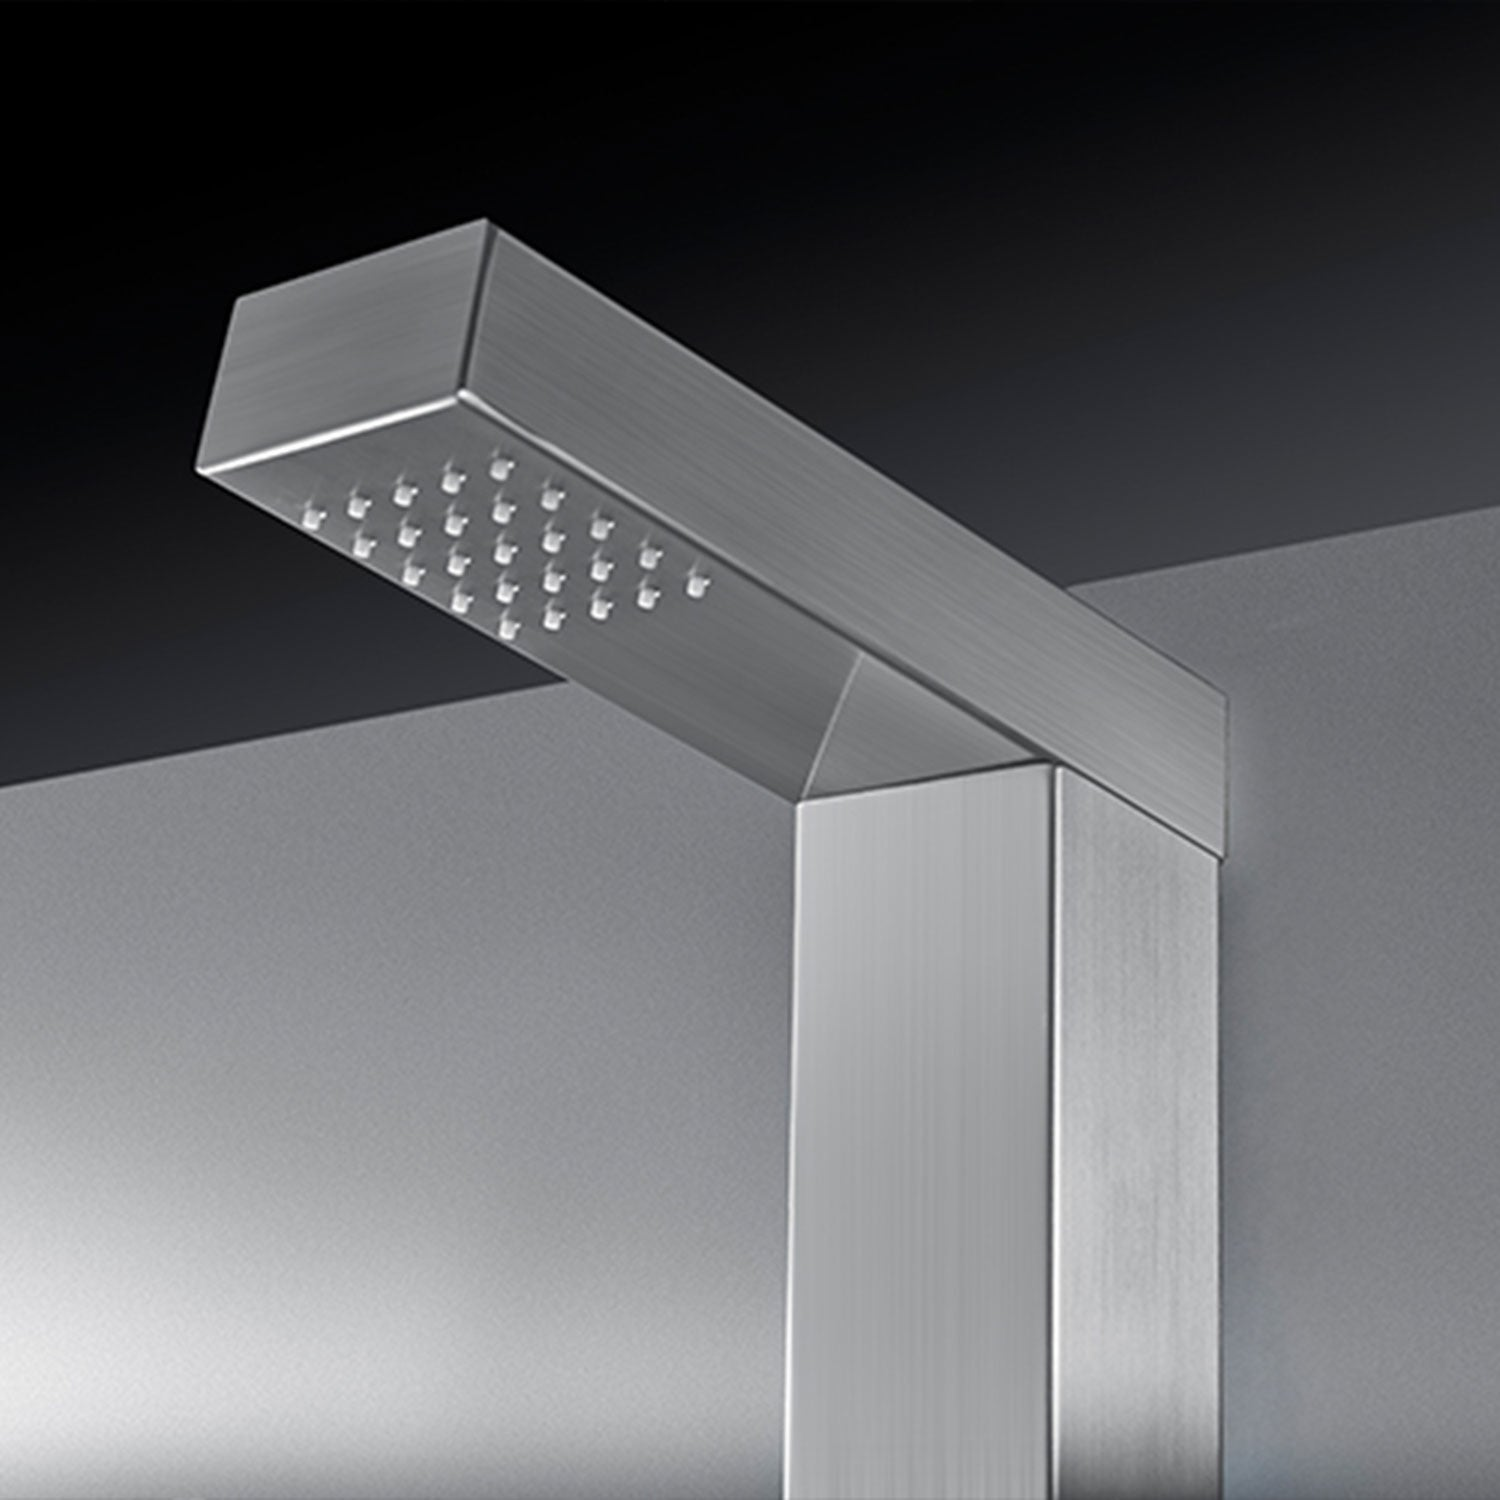 Empava 83 In Freestanding Outdoor Pool Shower Tower With Rainfall Waterfall Shower Head In Stainless Steel